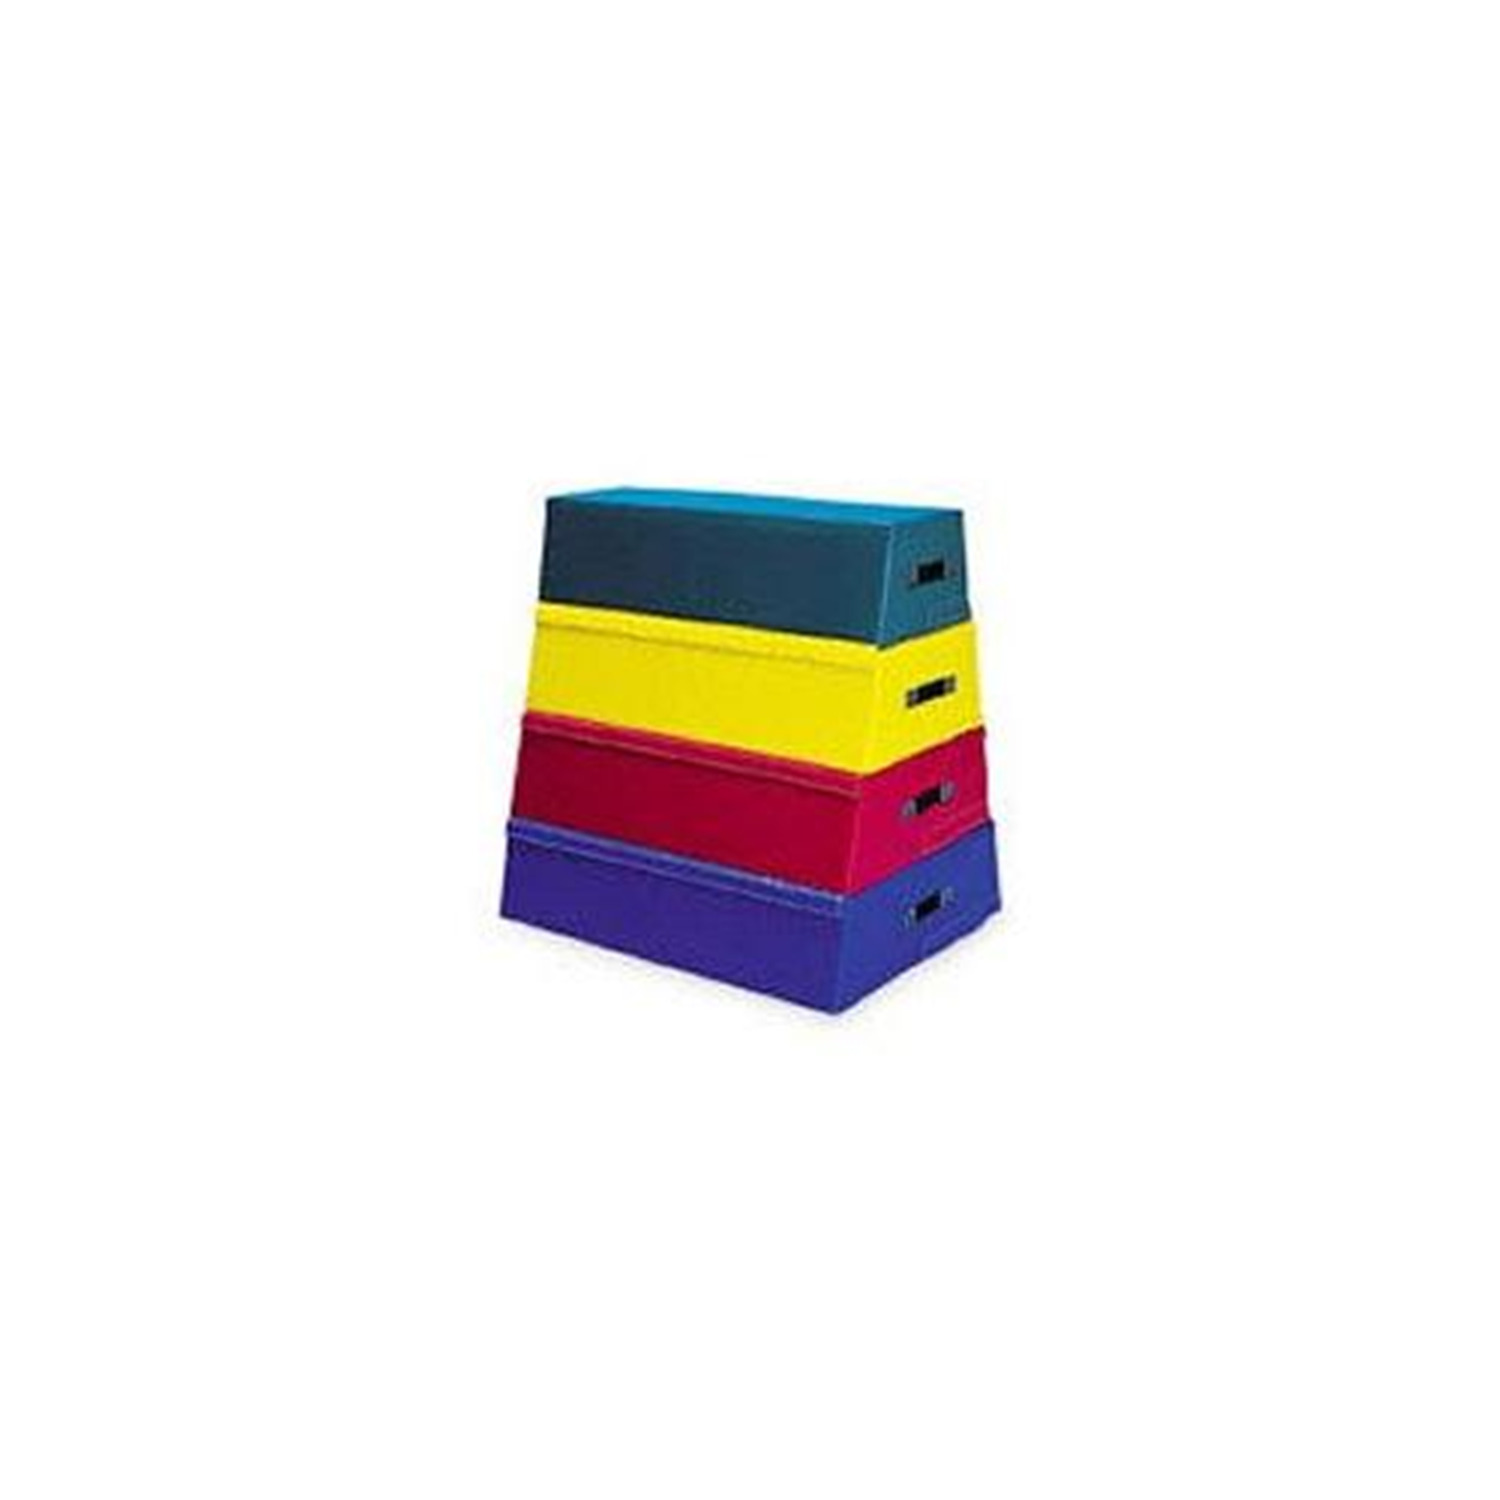 Trapezoid Foam Vaulting Box - [1041637]